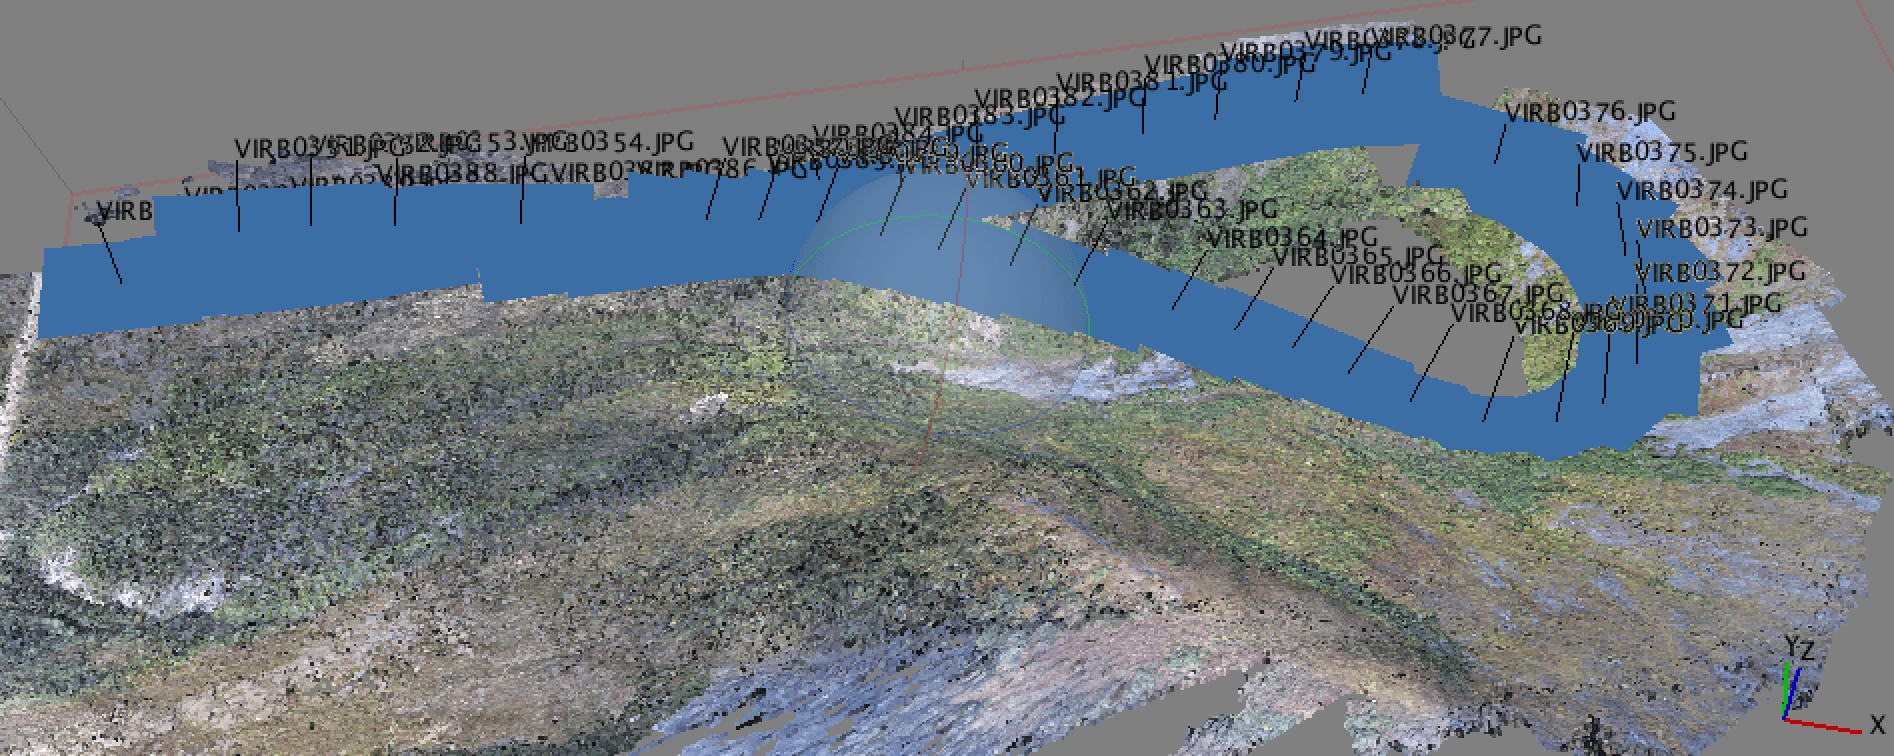 Image Geotagging. Geotagged images with 3D point cloud.